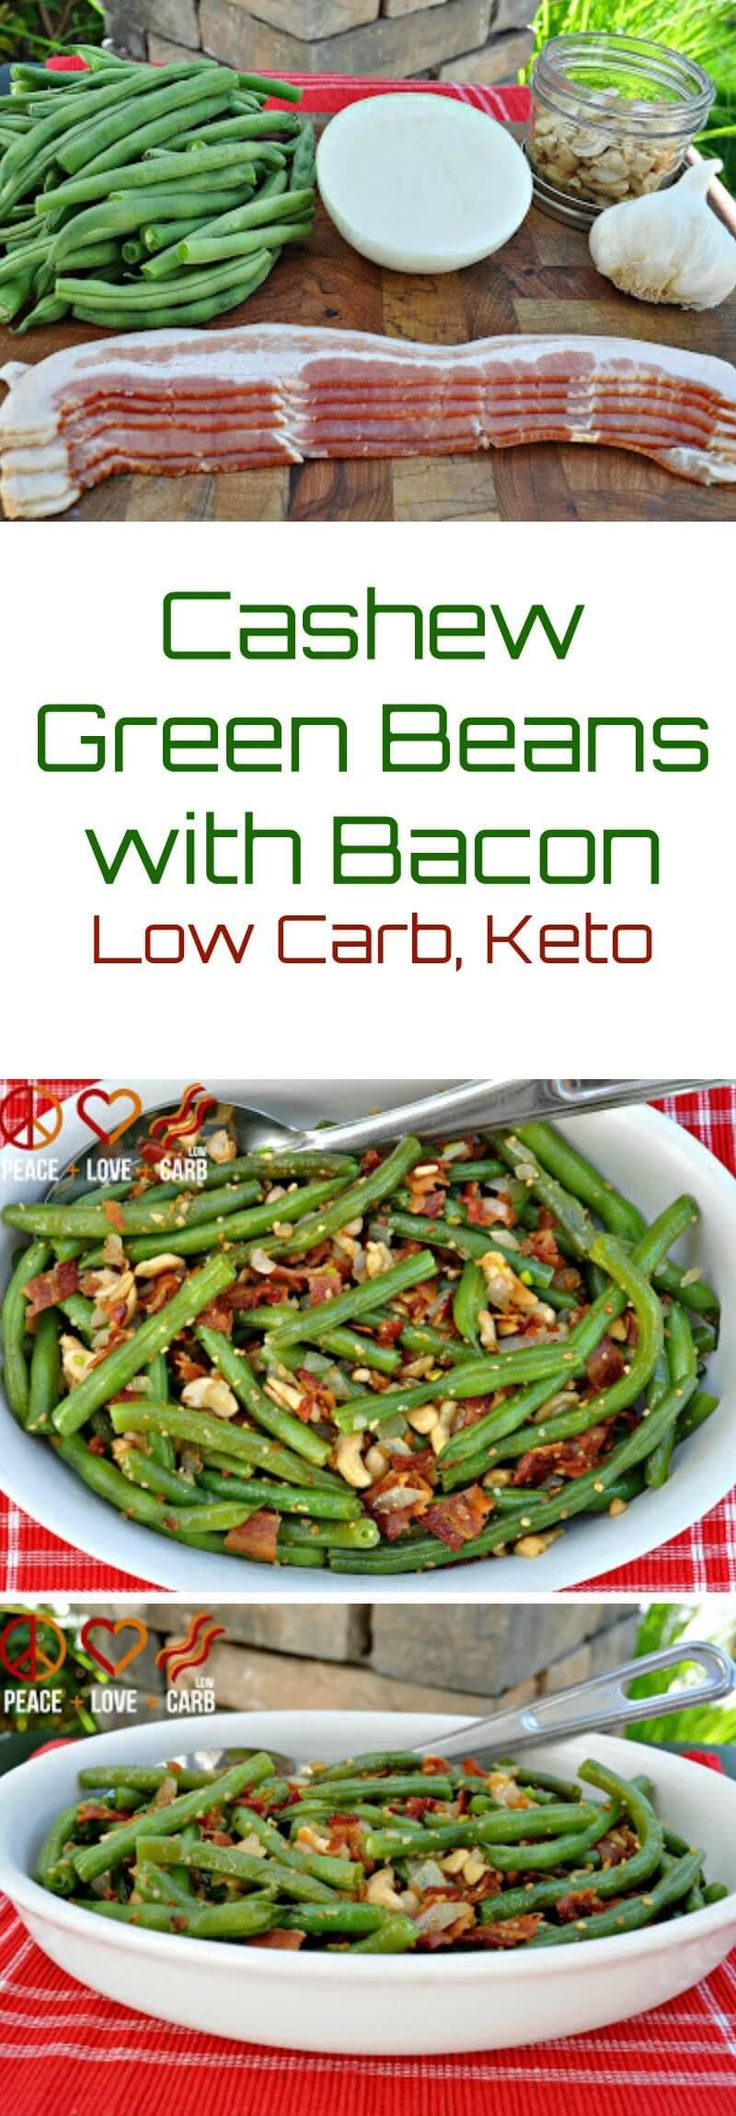 CASHEW GREEN BEANS WITH BACON Green beans and bacon go together like apples and pie. The addition of the cashews, onion and garlic just make it even better. Check out some of my other favorite low carb side dish recipes: Lemon Pepper Green Beans Green Bean Casserole Cheesy Garlic Creamed Spinach Roasted Mushrooms Zucchini and...